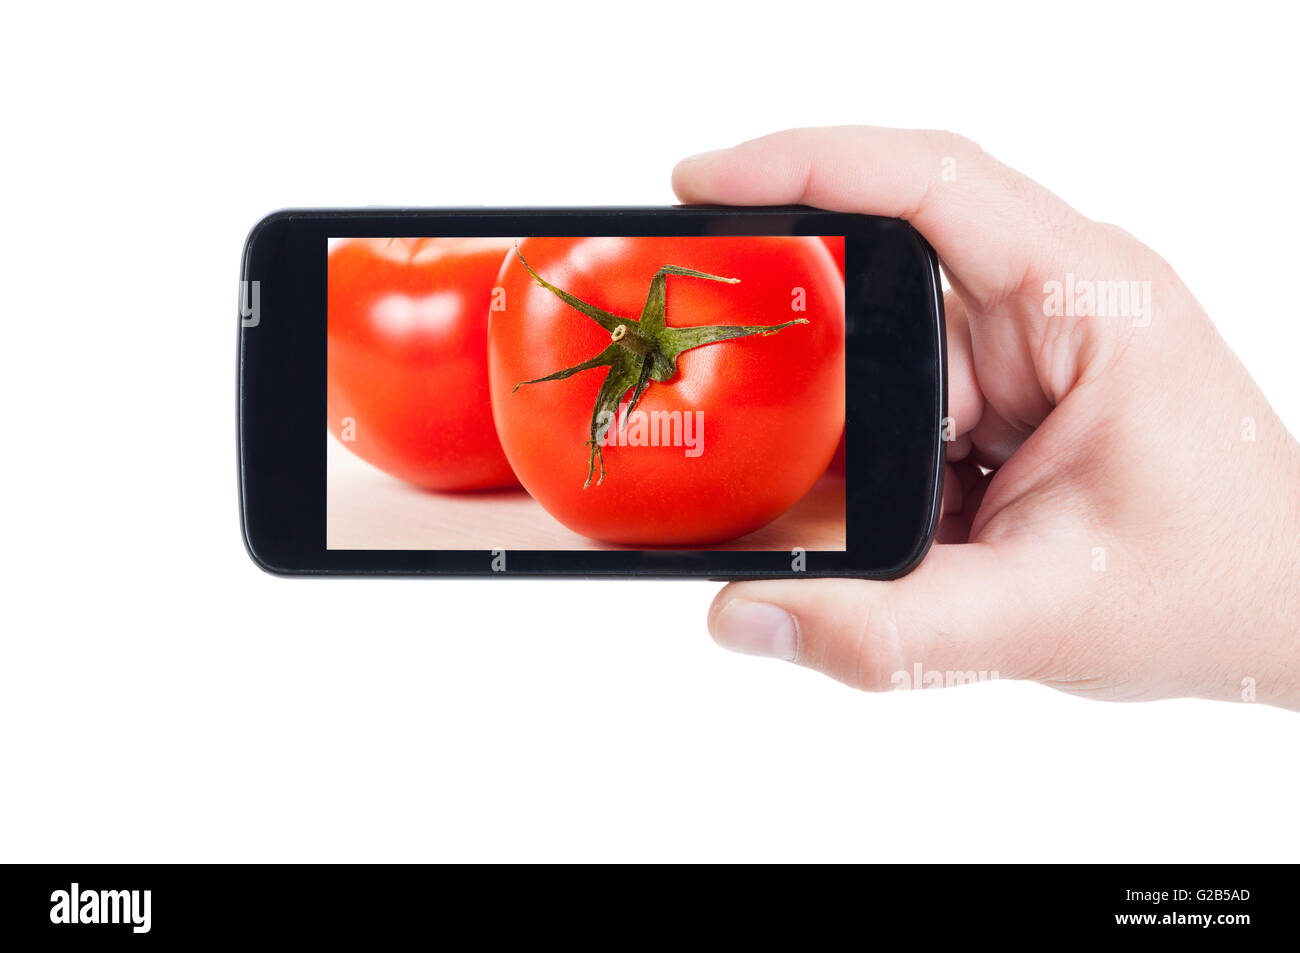 Fresh tomatoes on smartphone display or cellphone screen - Stock Image